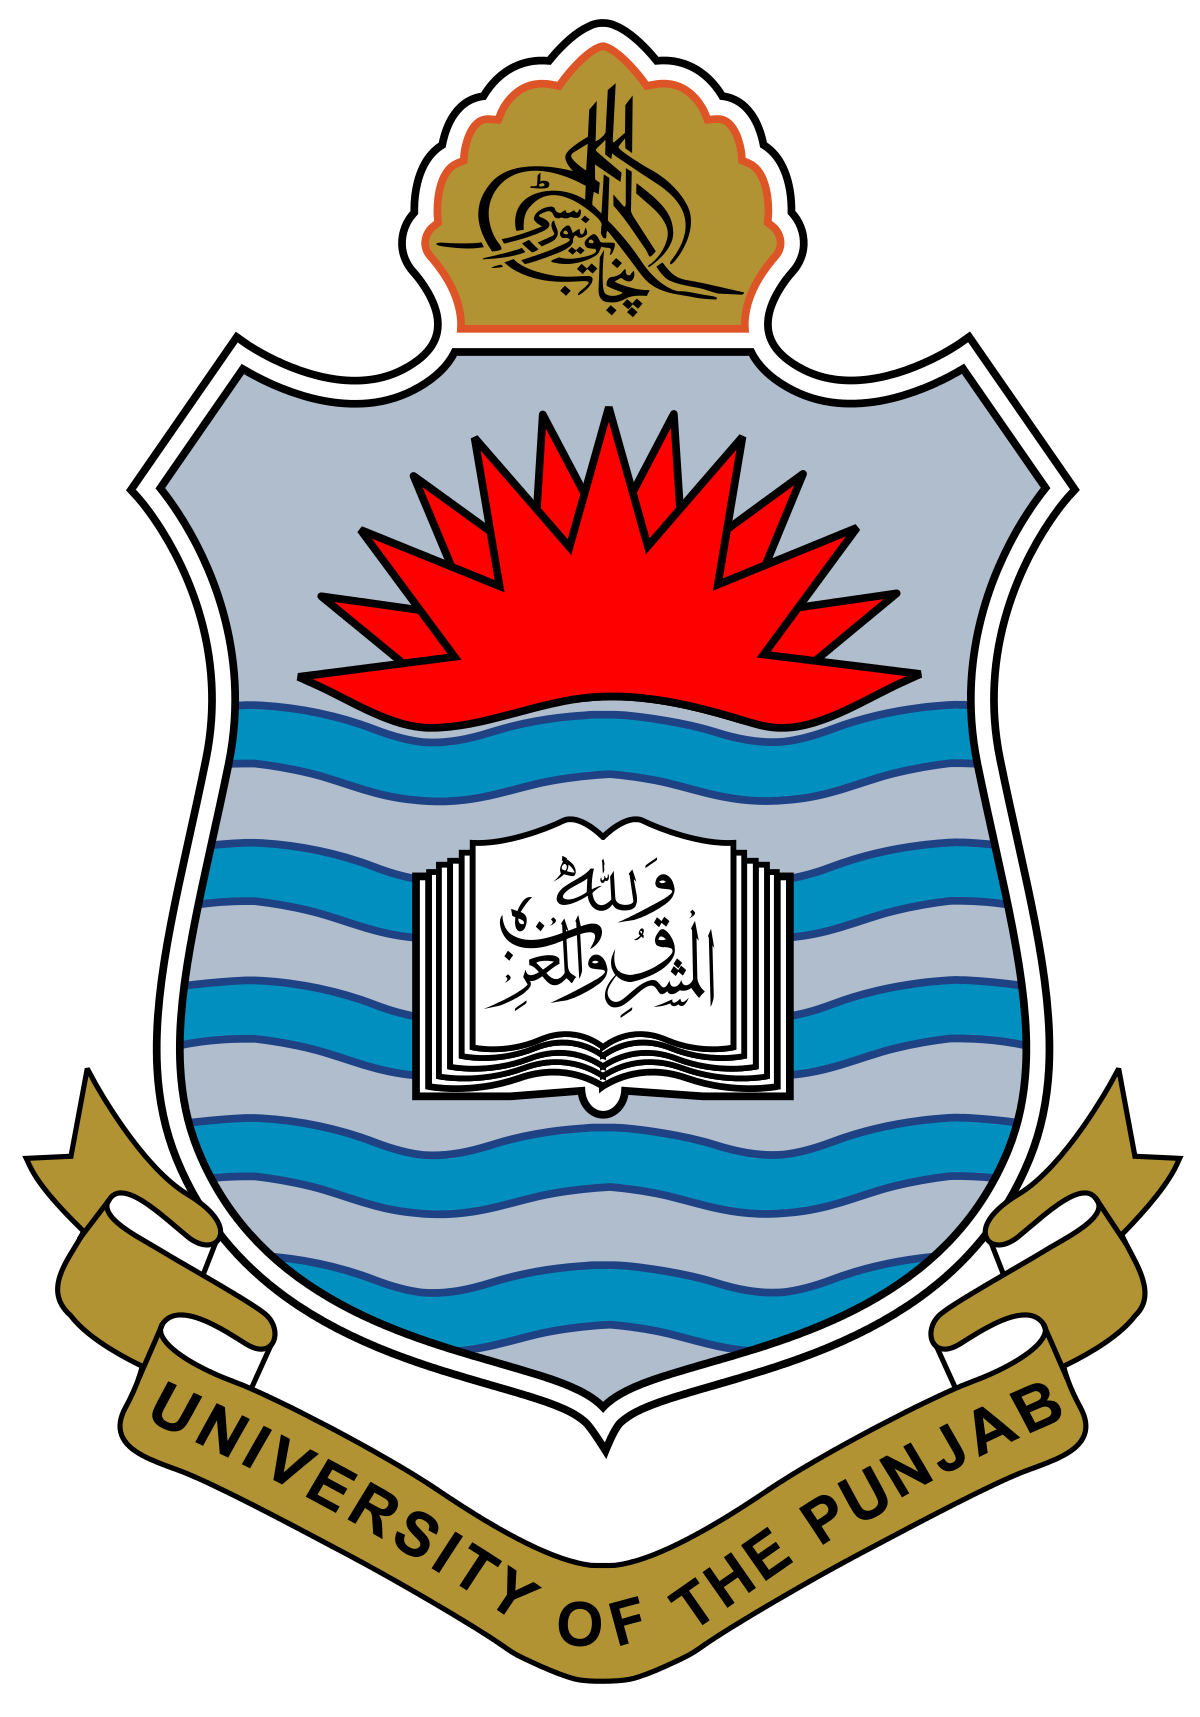 Punjab University Contact Number, Fee Structure, Campuses